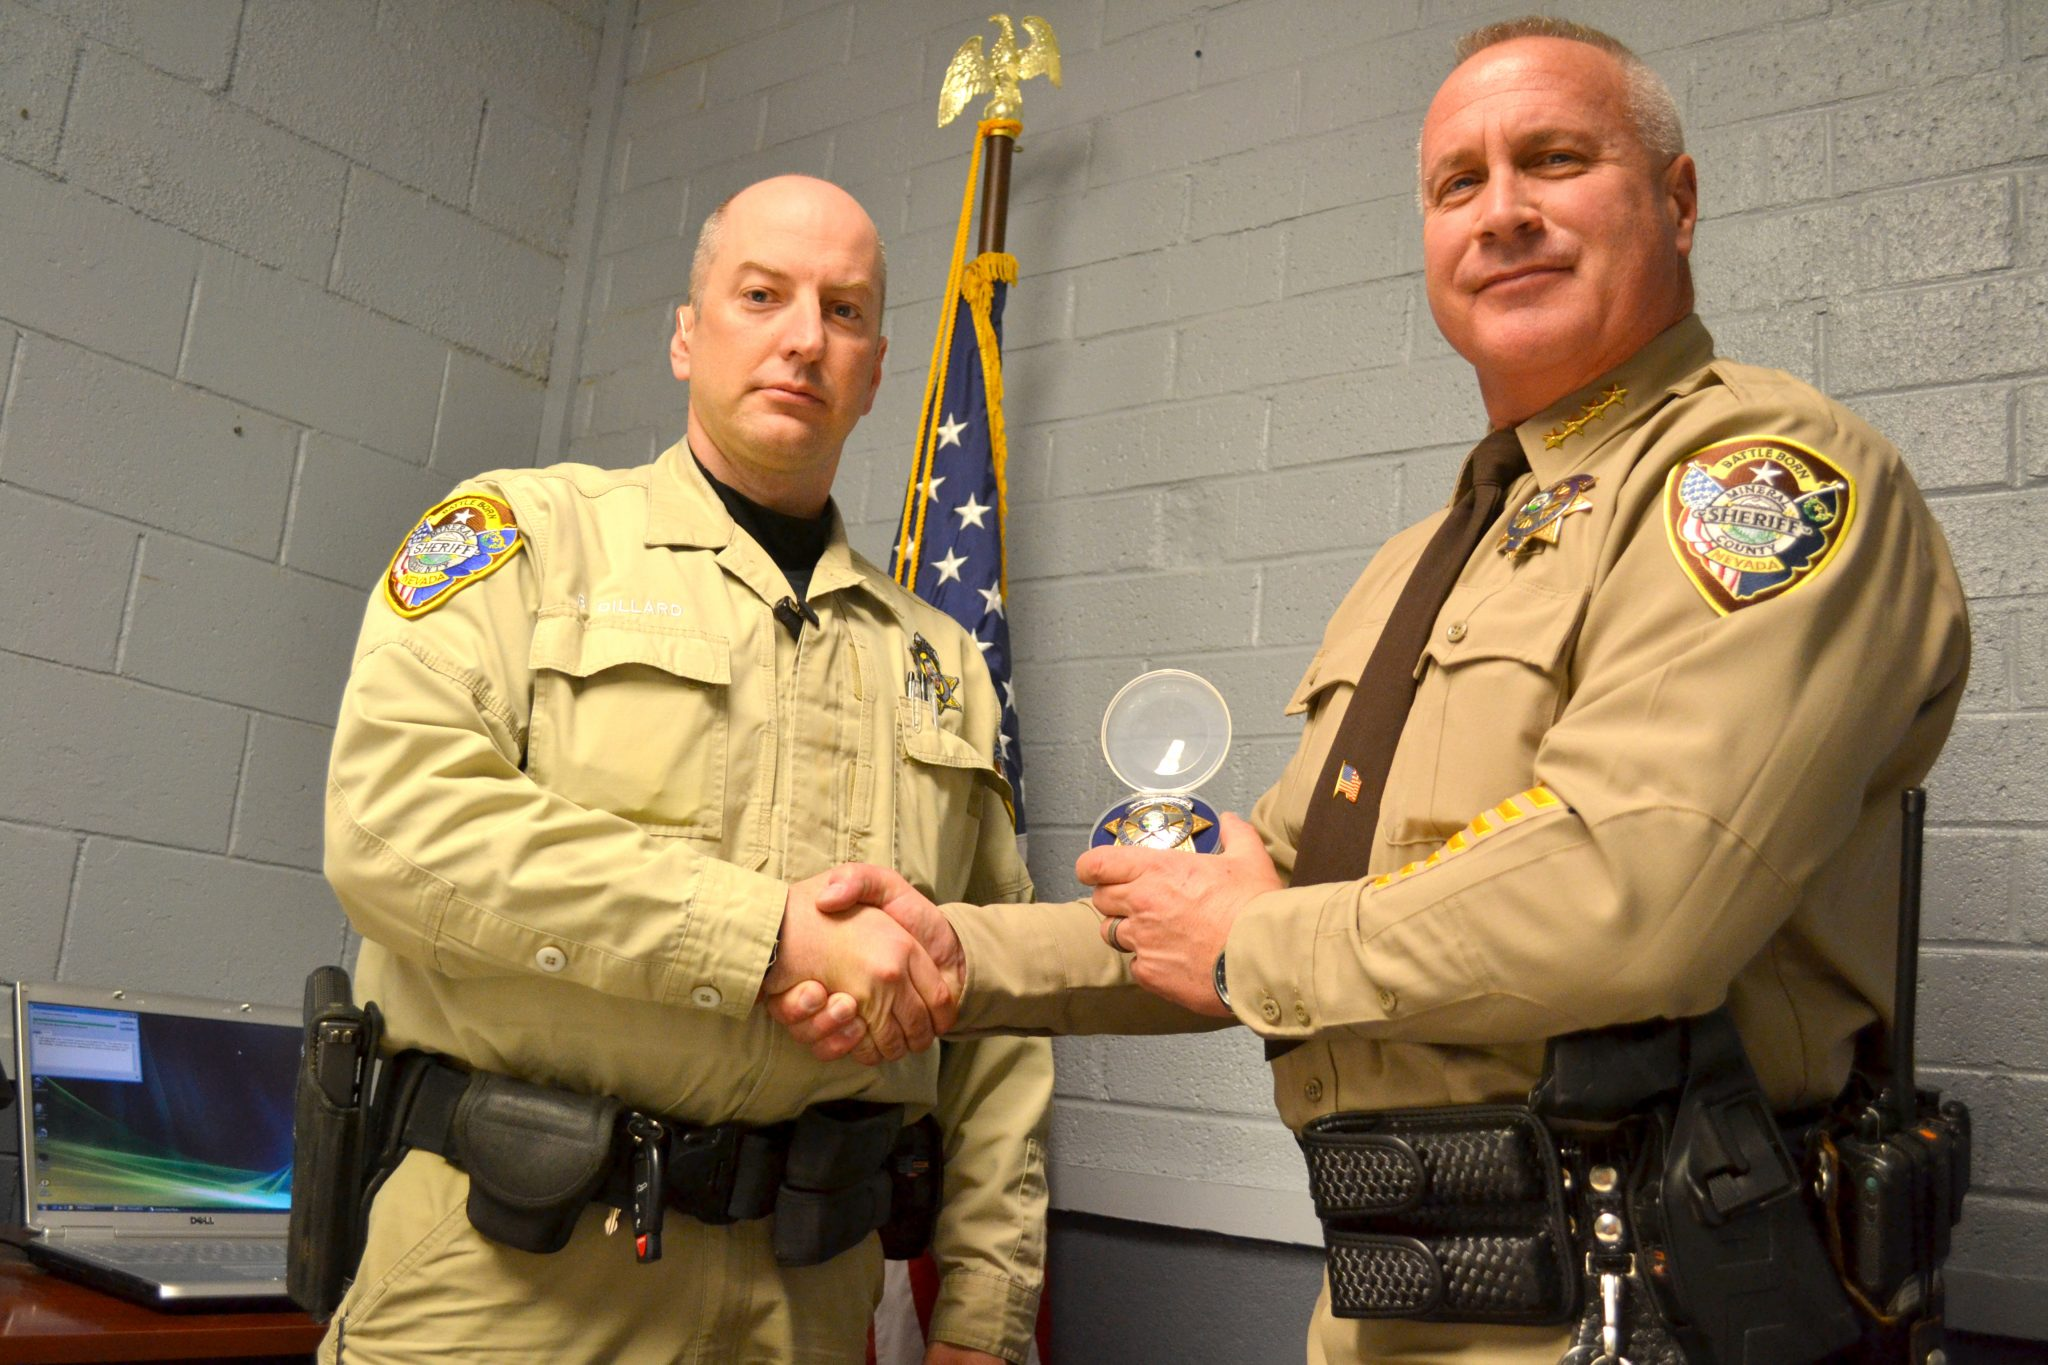 Dillard promoted to Lieutenant of Mineral County Sheriff's Department